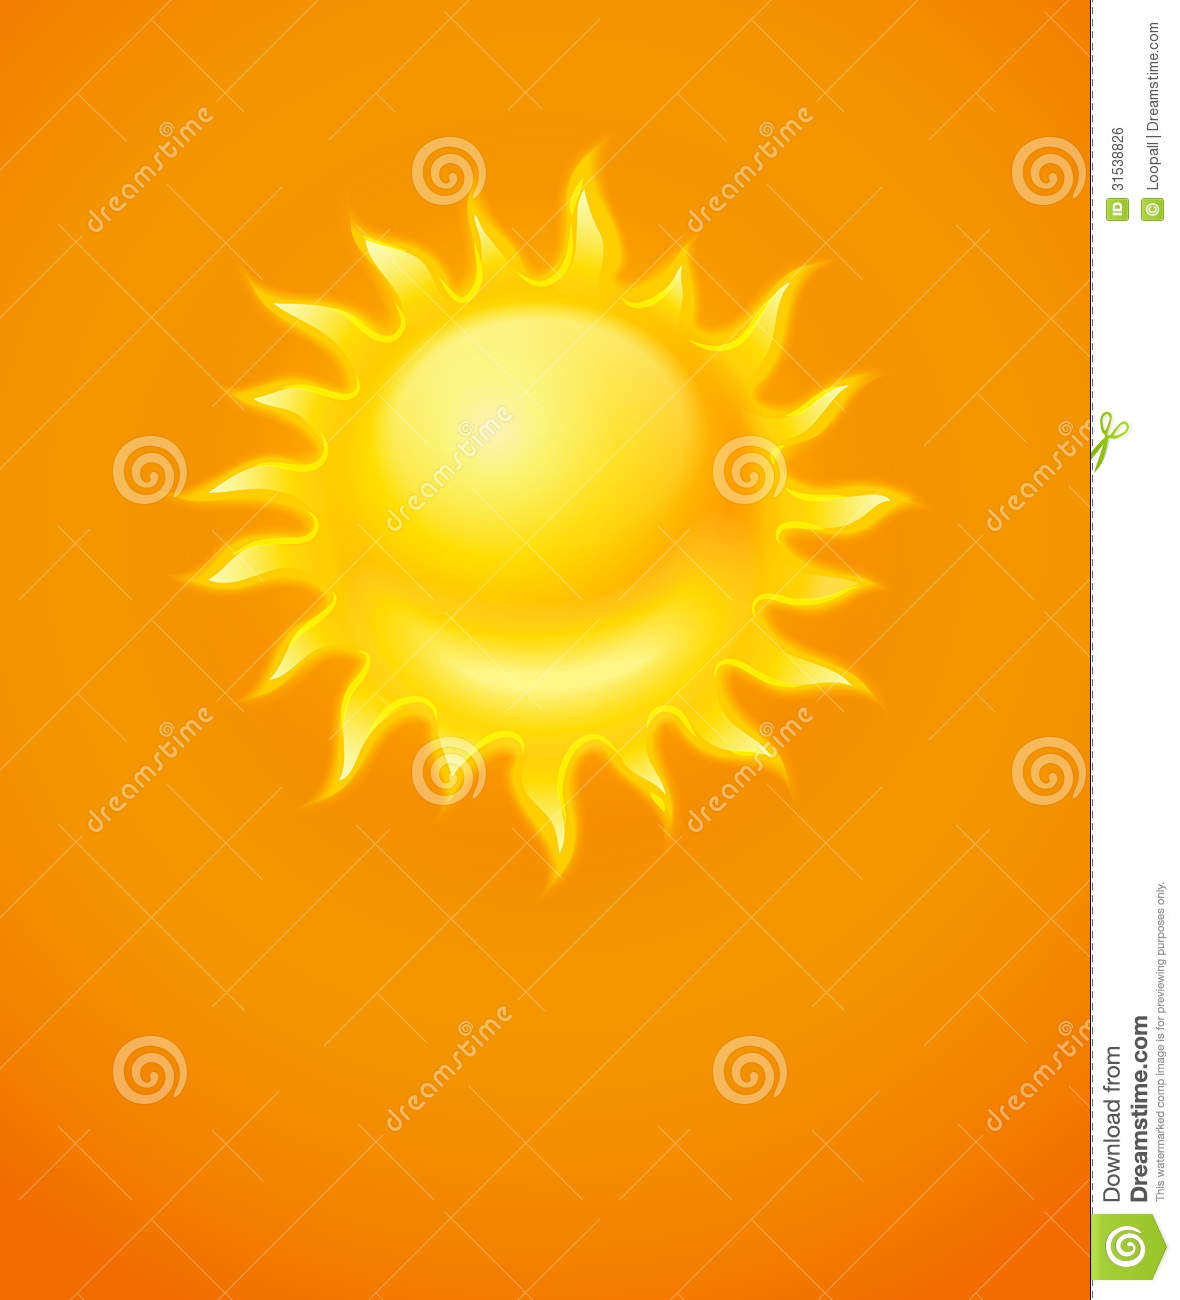 hot objects clipart - photo #33